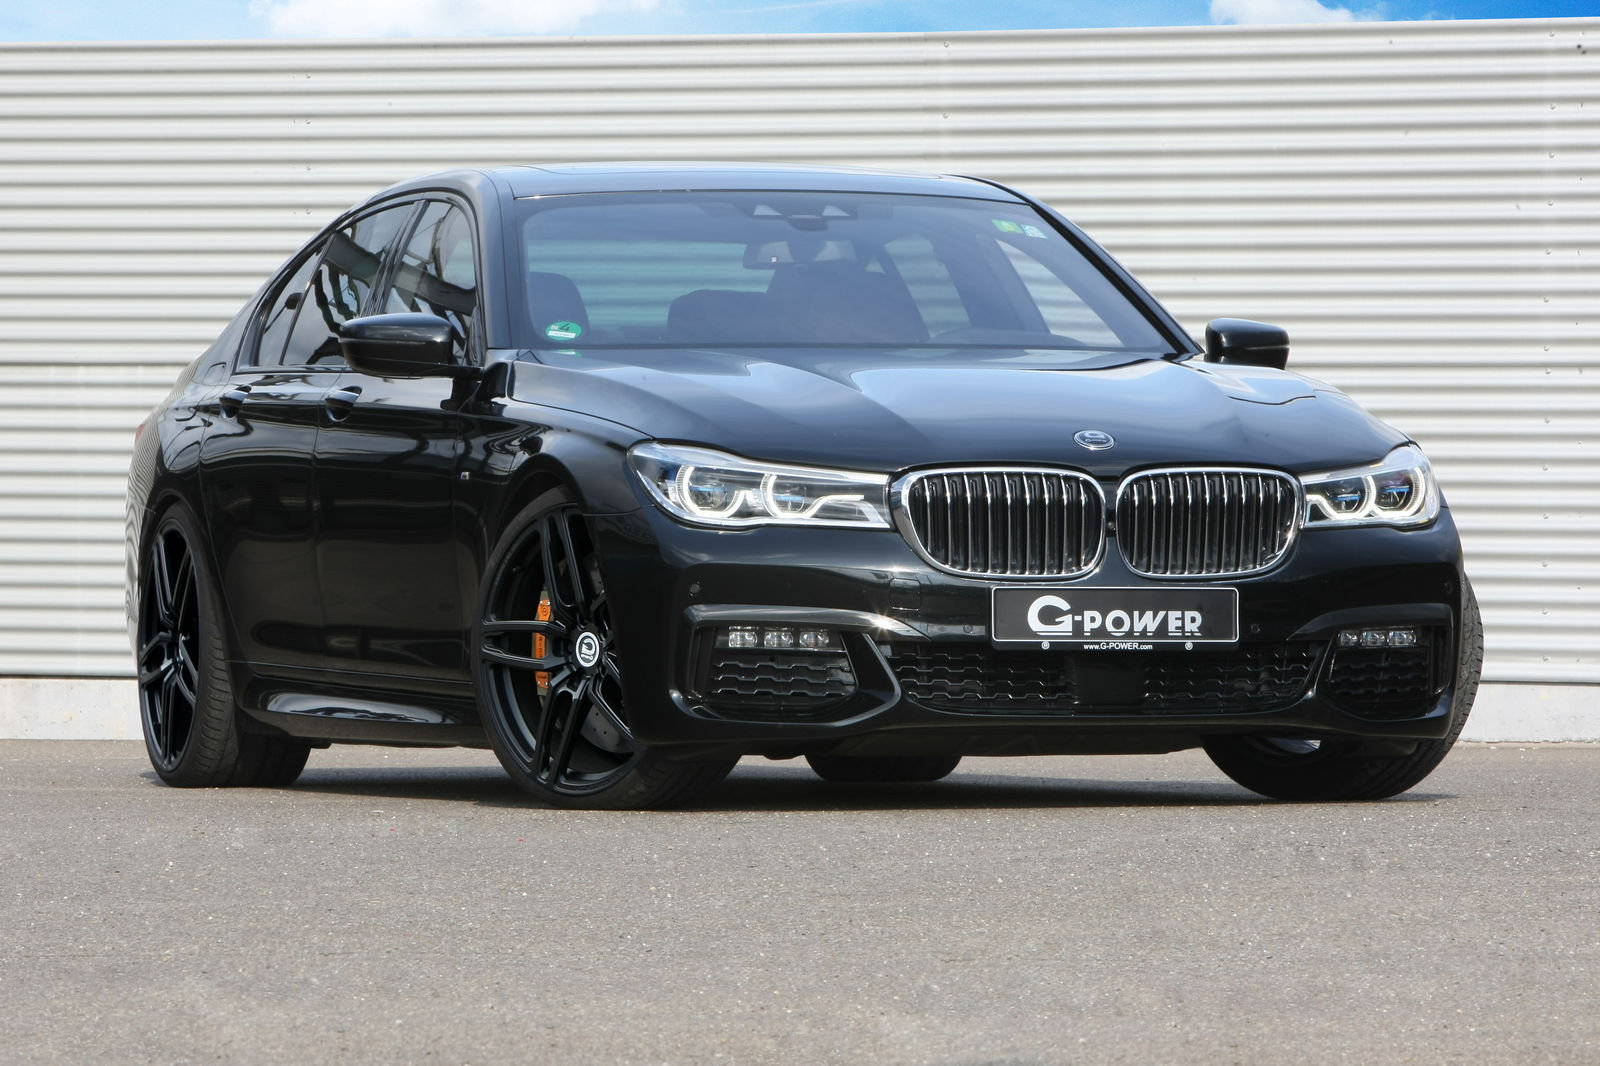 G-Power Takes BMW 750d to 460 HP in Quad-Turbo Tuning Experiment